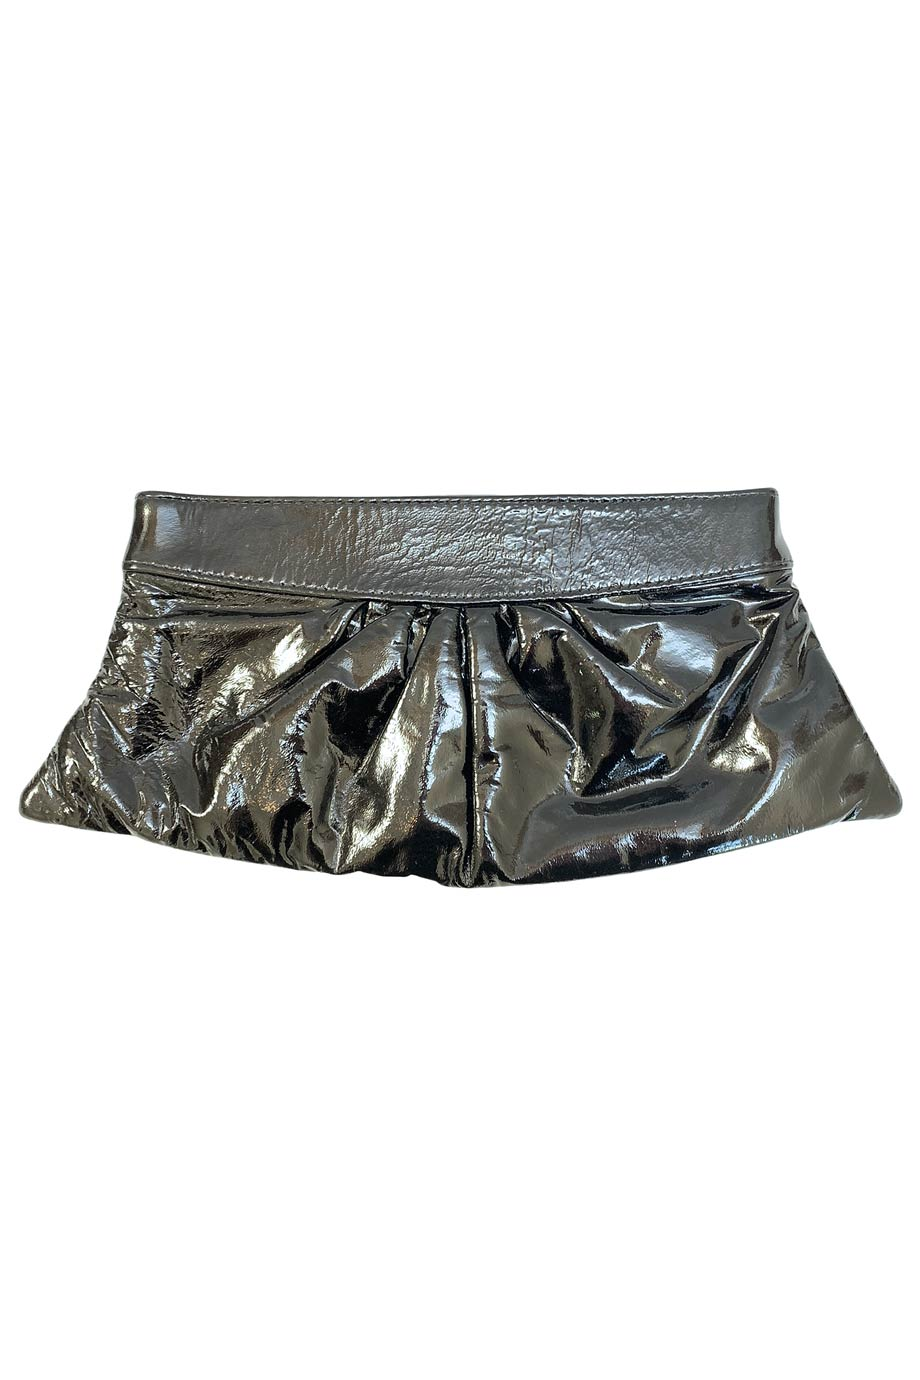 Lauren Merkin Black Patent Leather Clutch Bag